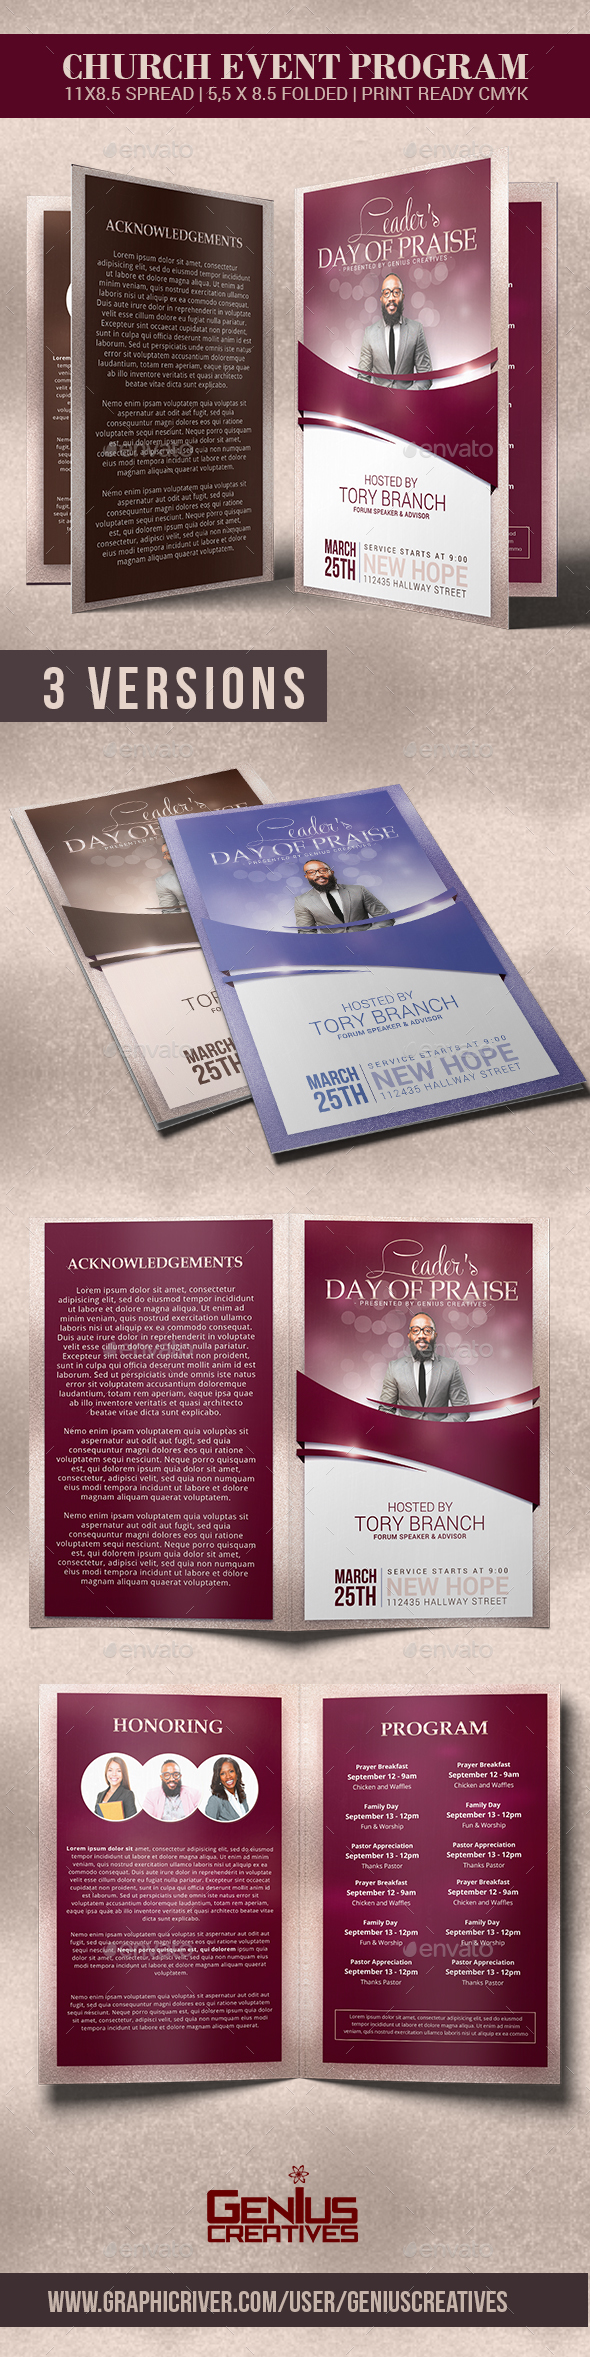 GraphicRiver Leader's Day of Praise Church Program Template 20663511